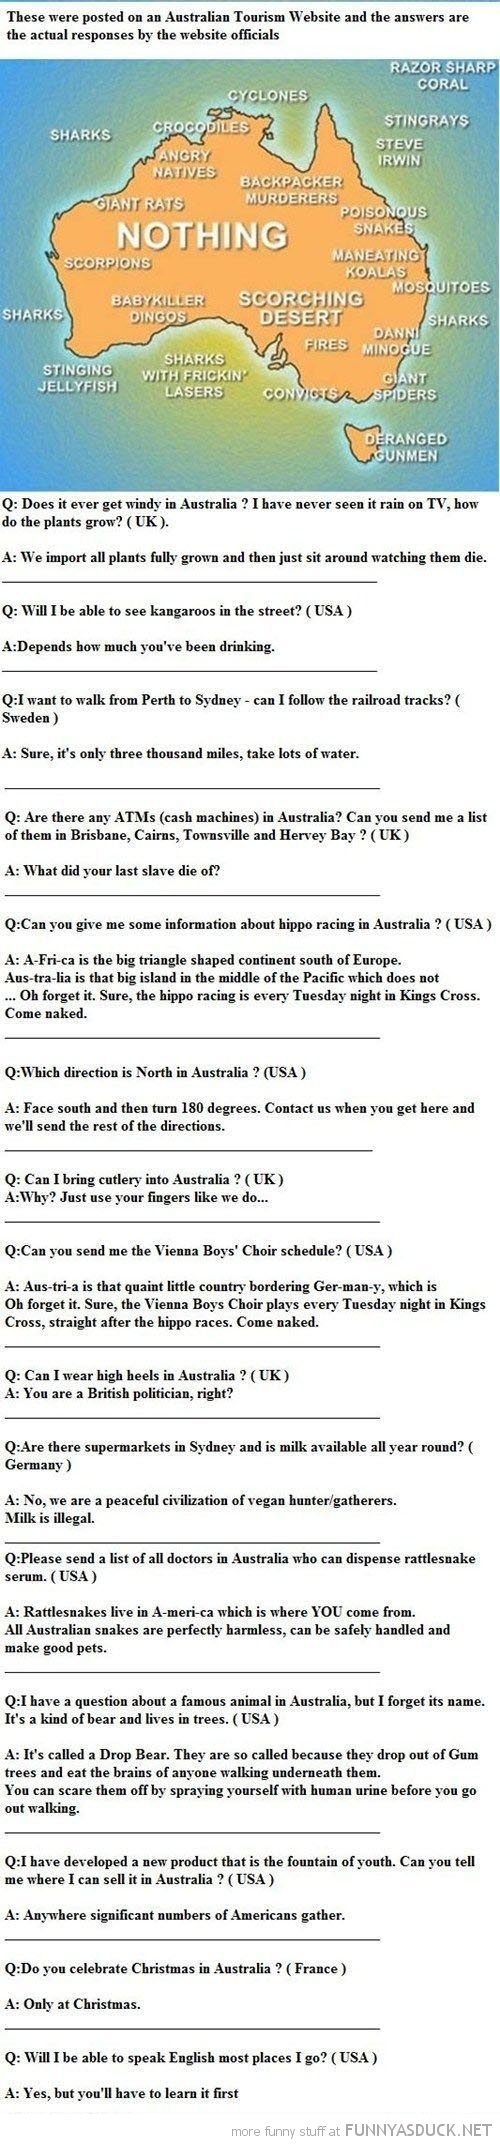 questions answers Australian tourism board funny pics pictures pic picture image photo images photos lol